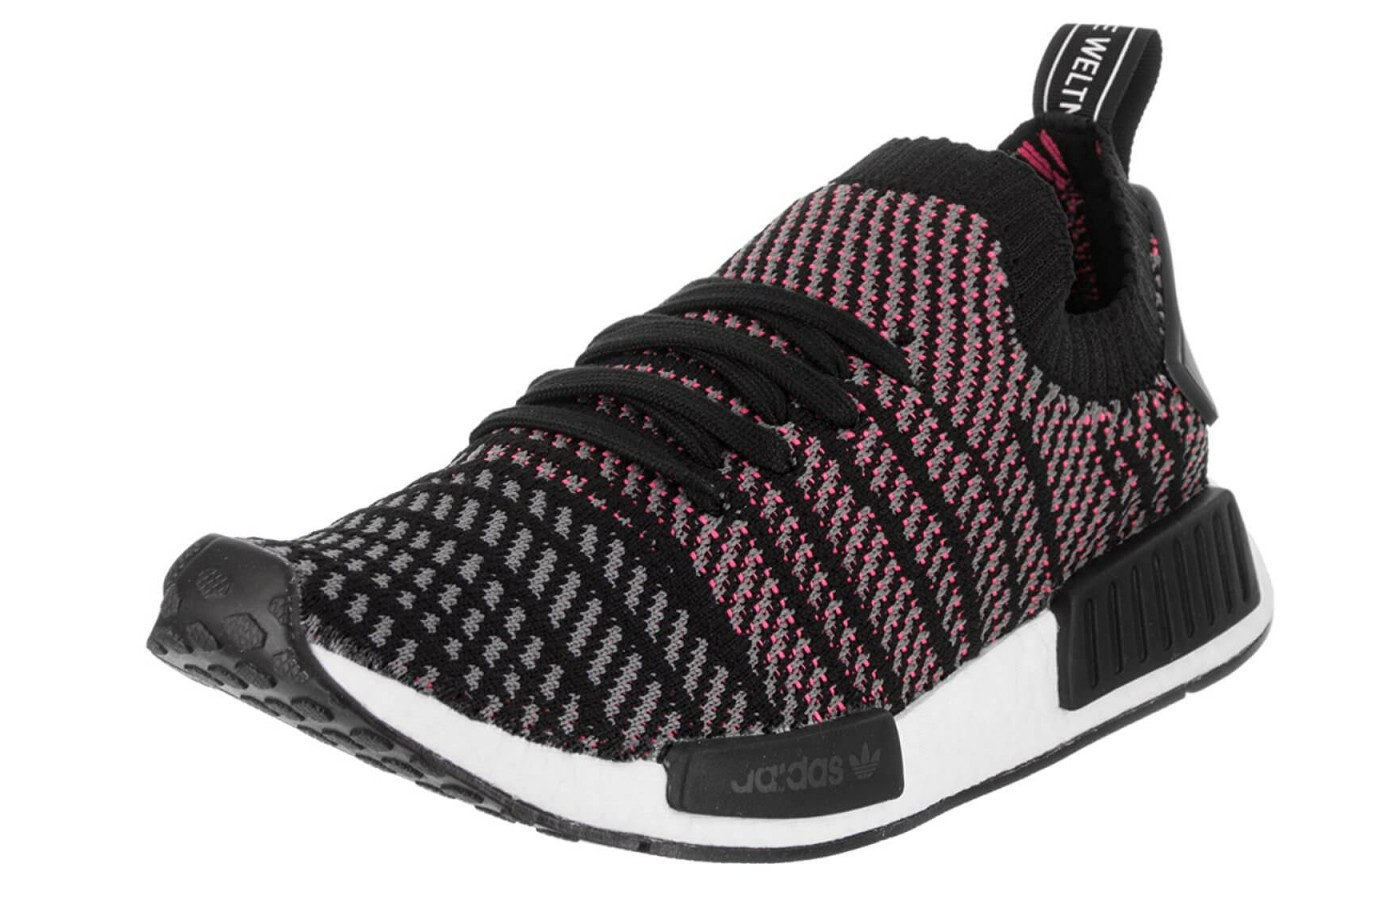 free shipping 6adb9 76e0b The Adidas NMD R1 Stlt Primeknit features a Primeknit upper ...